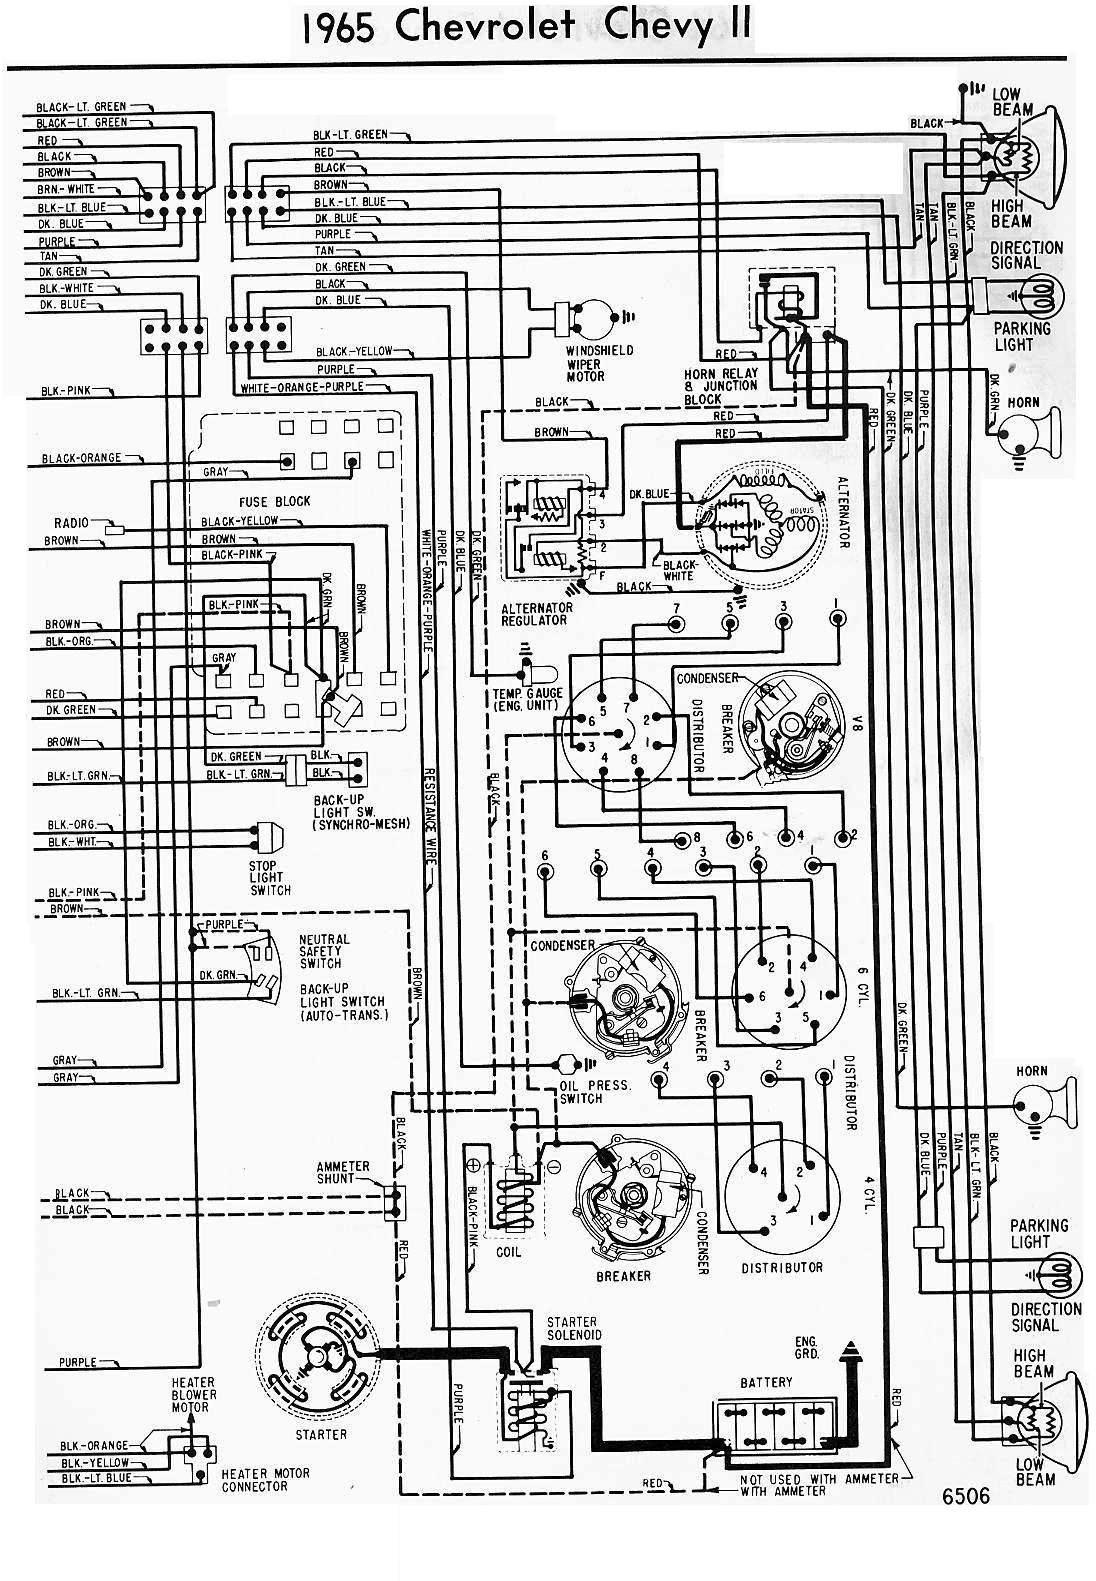 1964 chevy nova wiring diagram a 220 outlet 1965 chevrolet ii all about